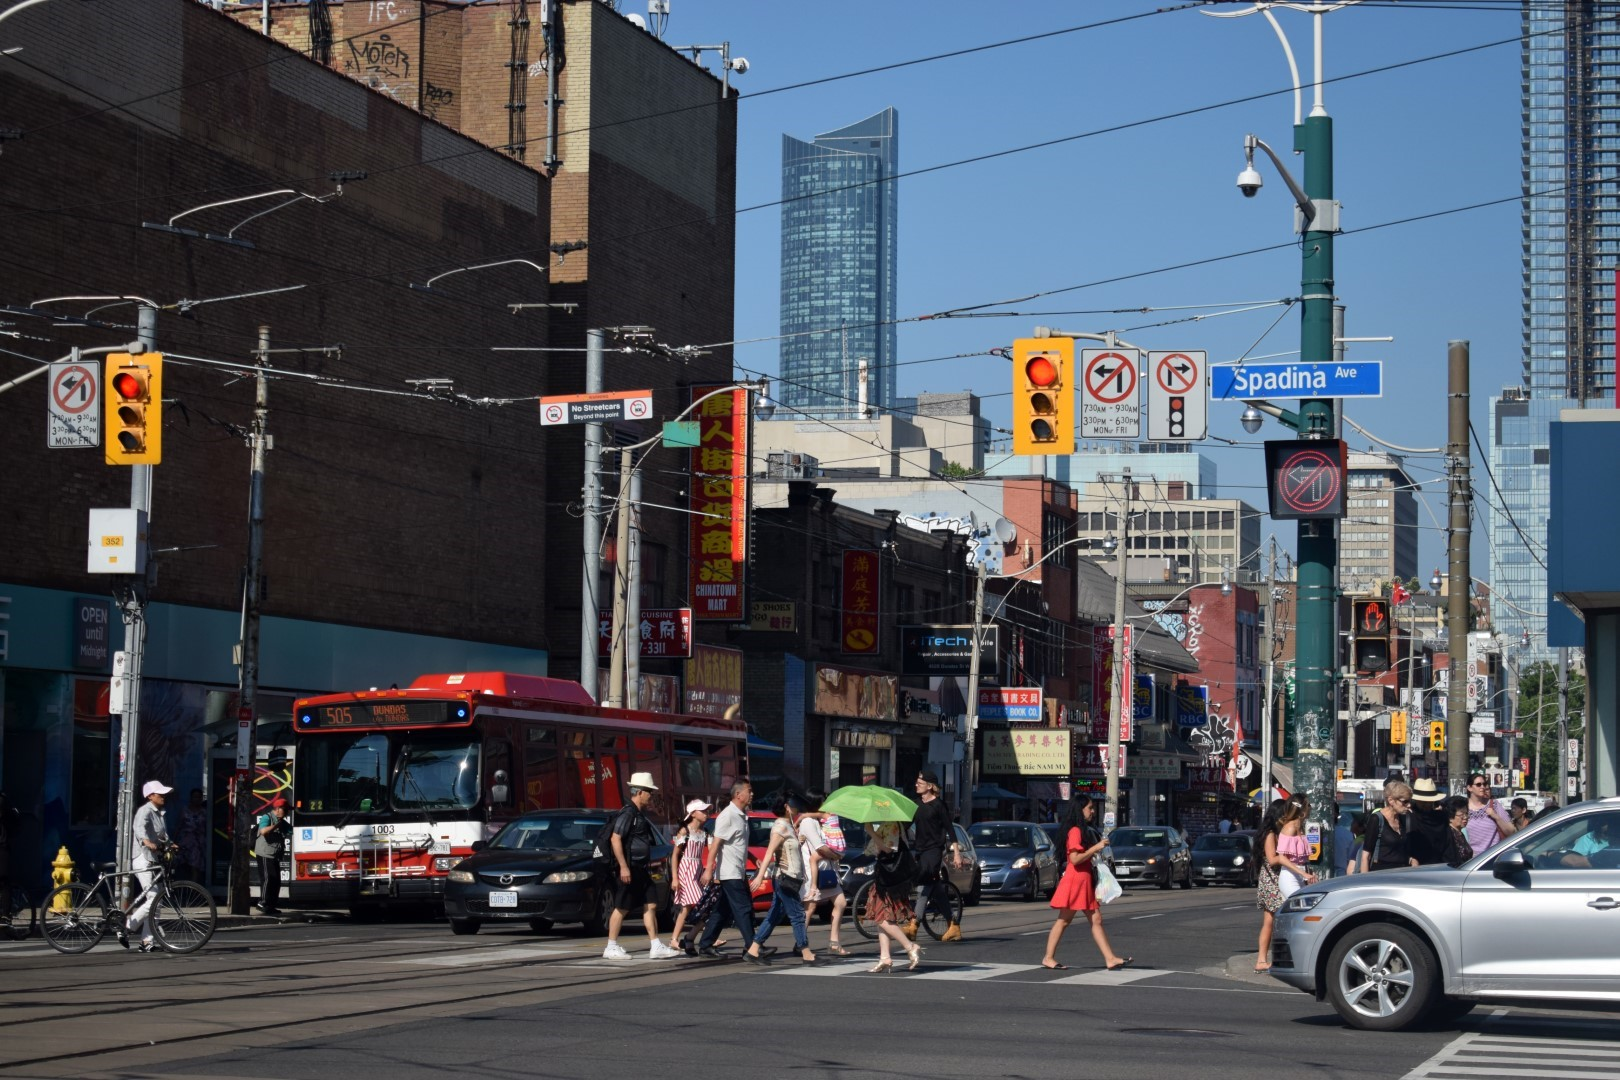 Spadina and Dundas, Chinatown, Toronto